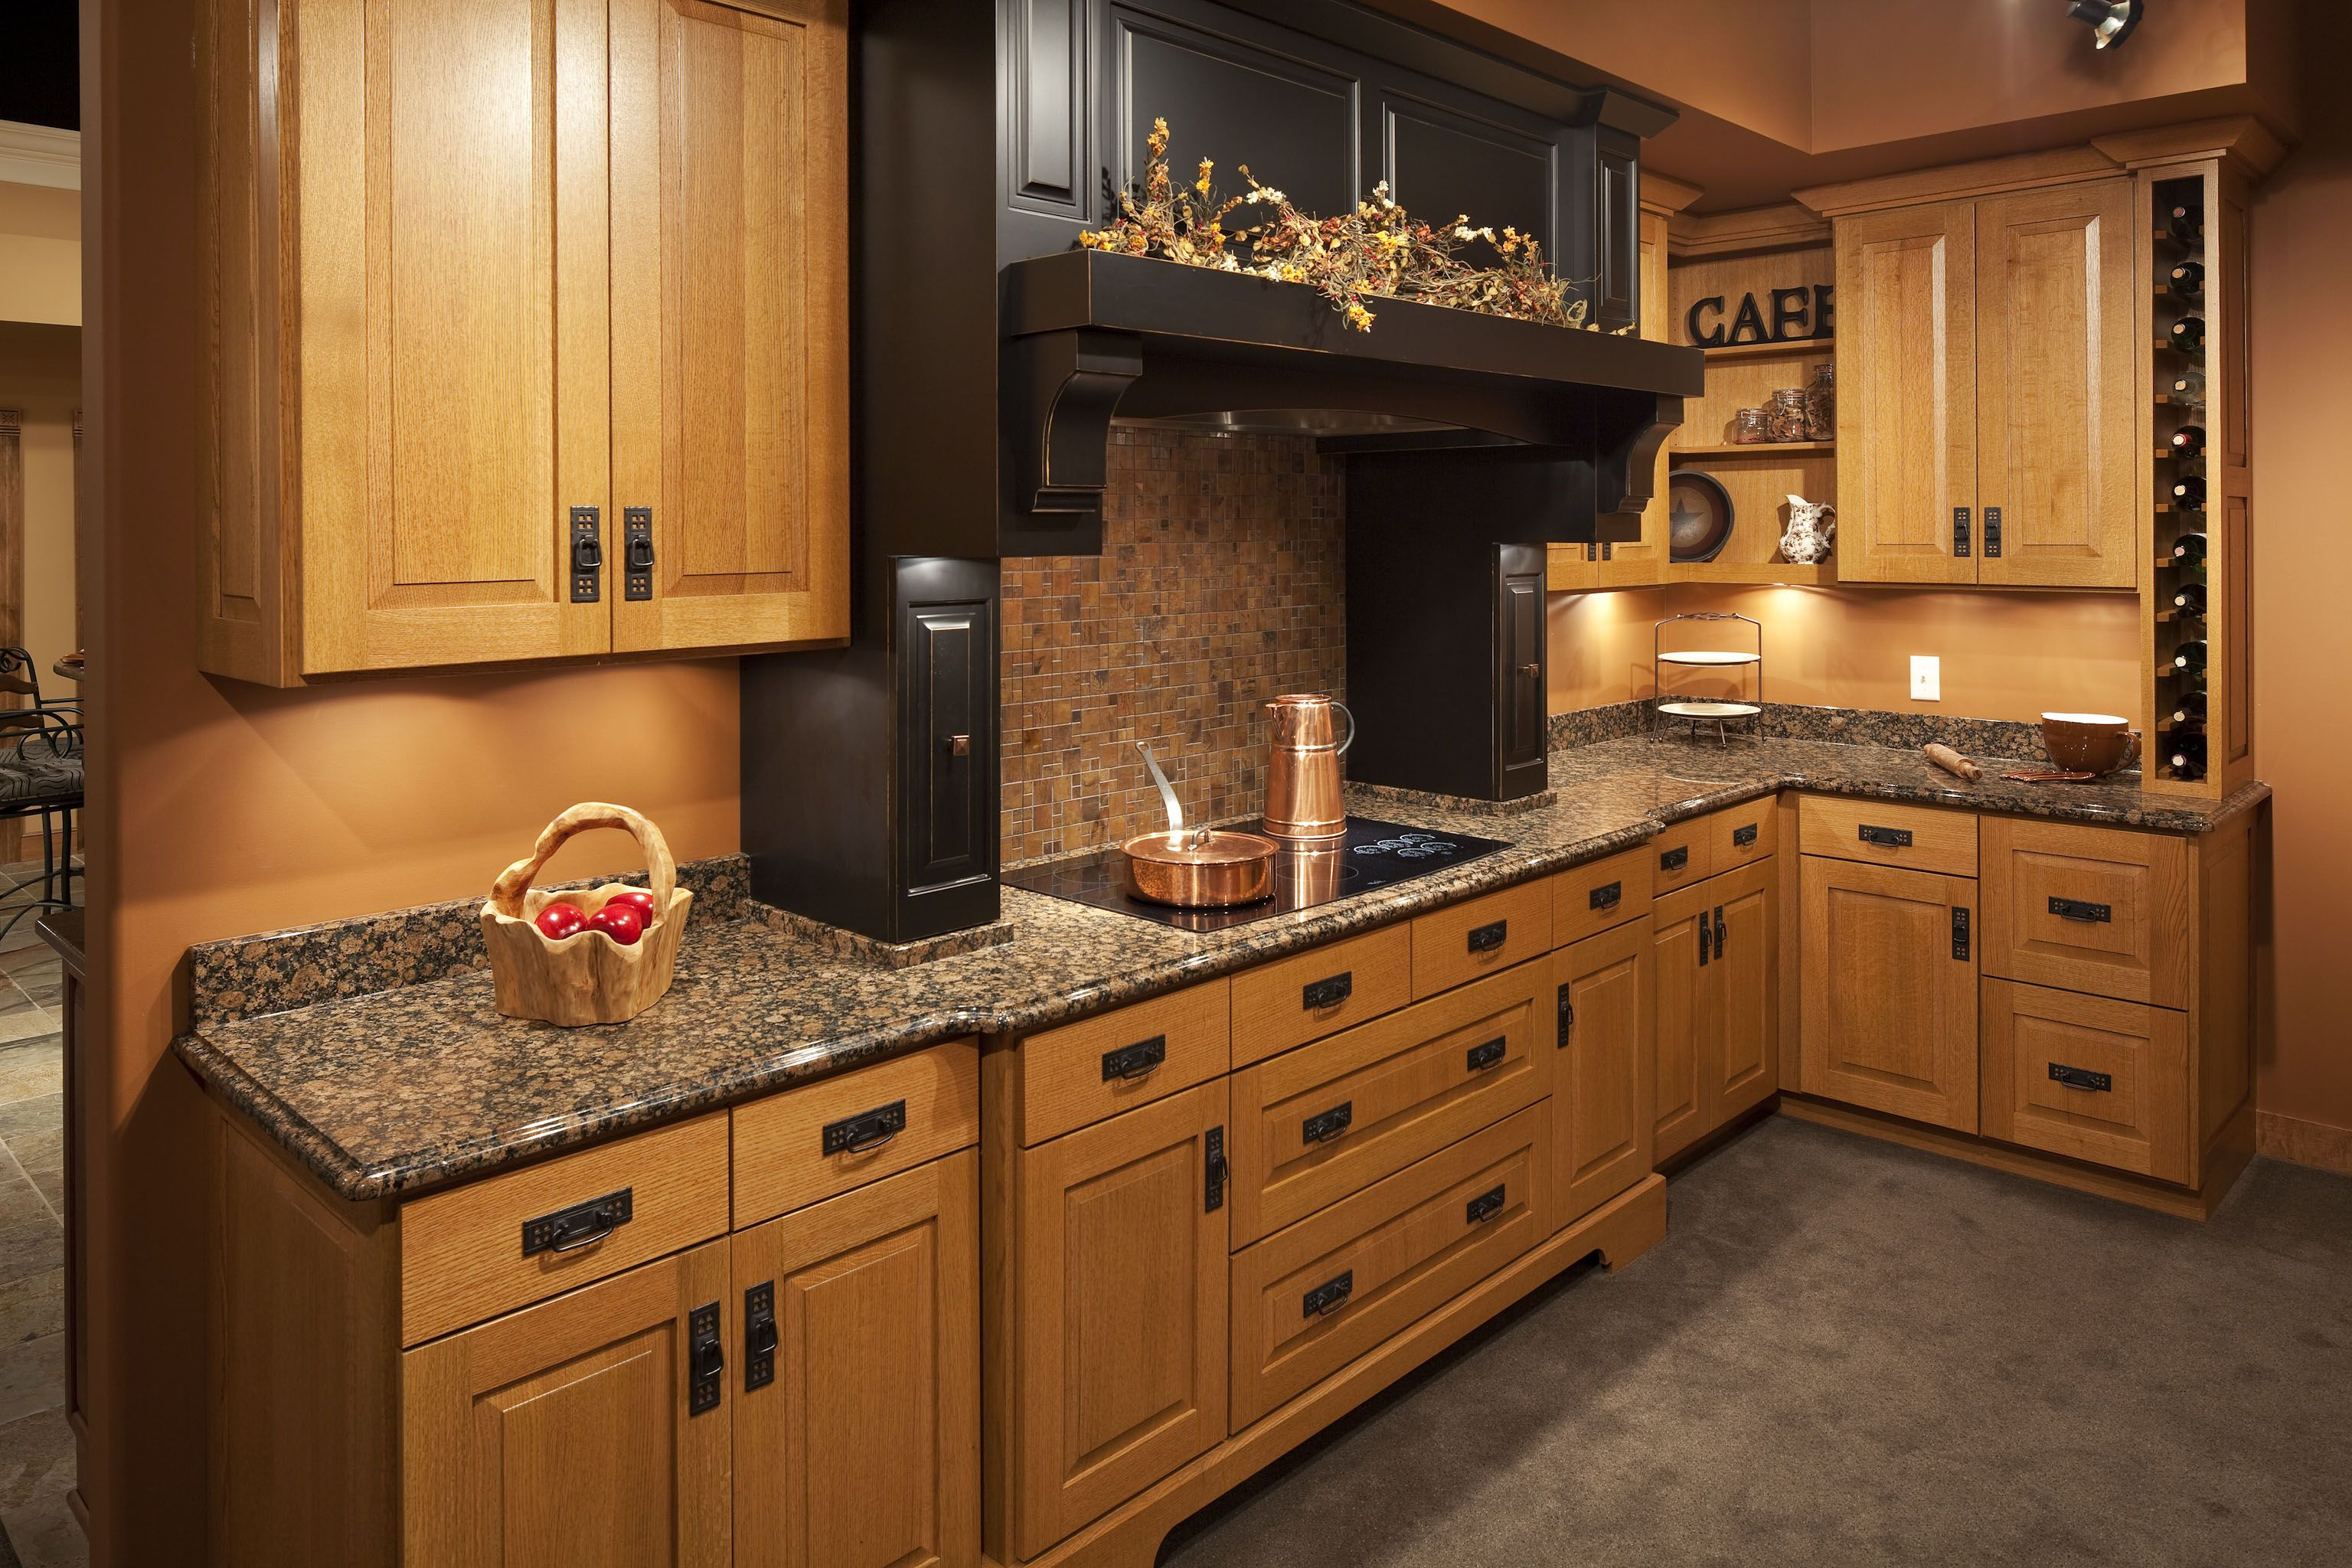 Mission Style Kitchen Cabinets Mission Inspiration Mission Style Kitchen Cabinets Kitchen Cabinet Styles Kitchen Styling